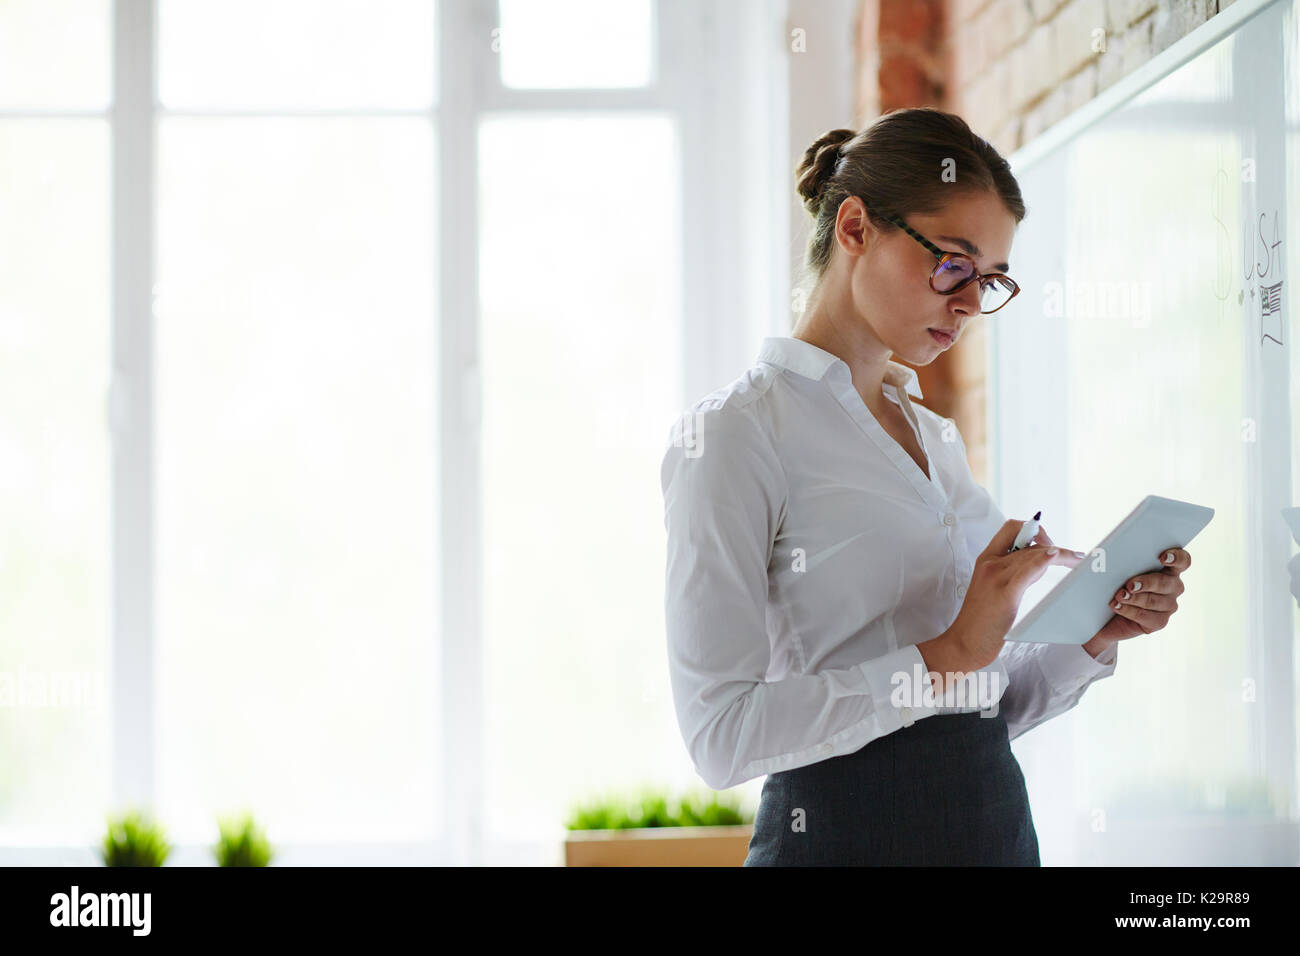 Prepare for lesson - Stock Image